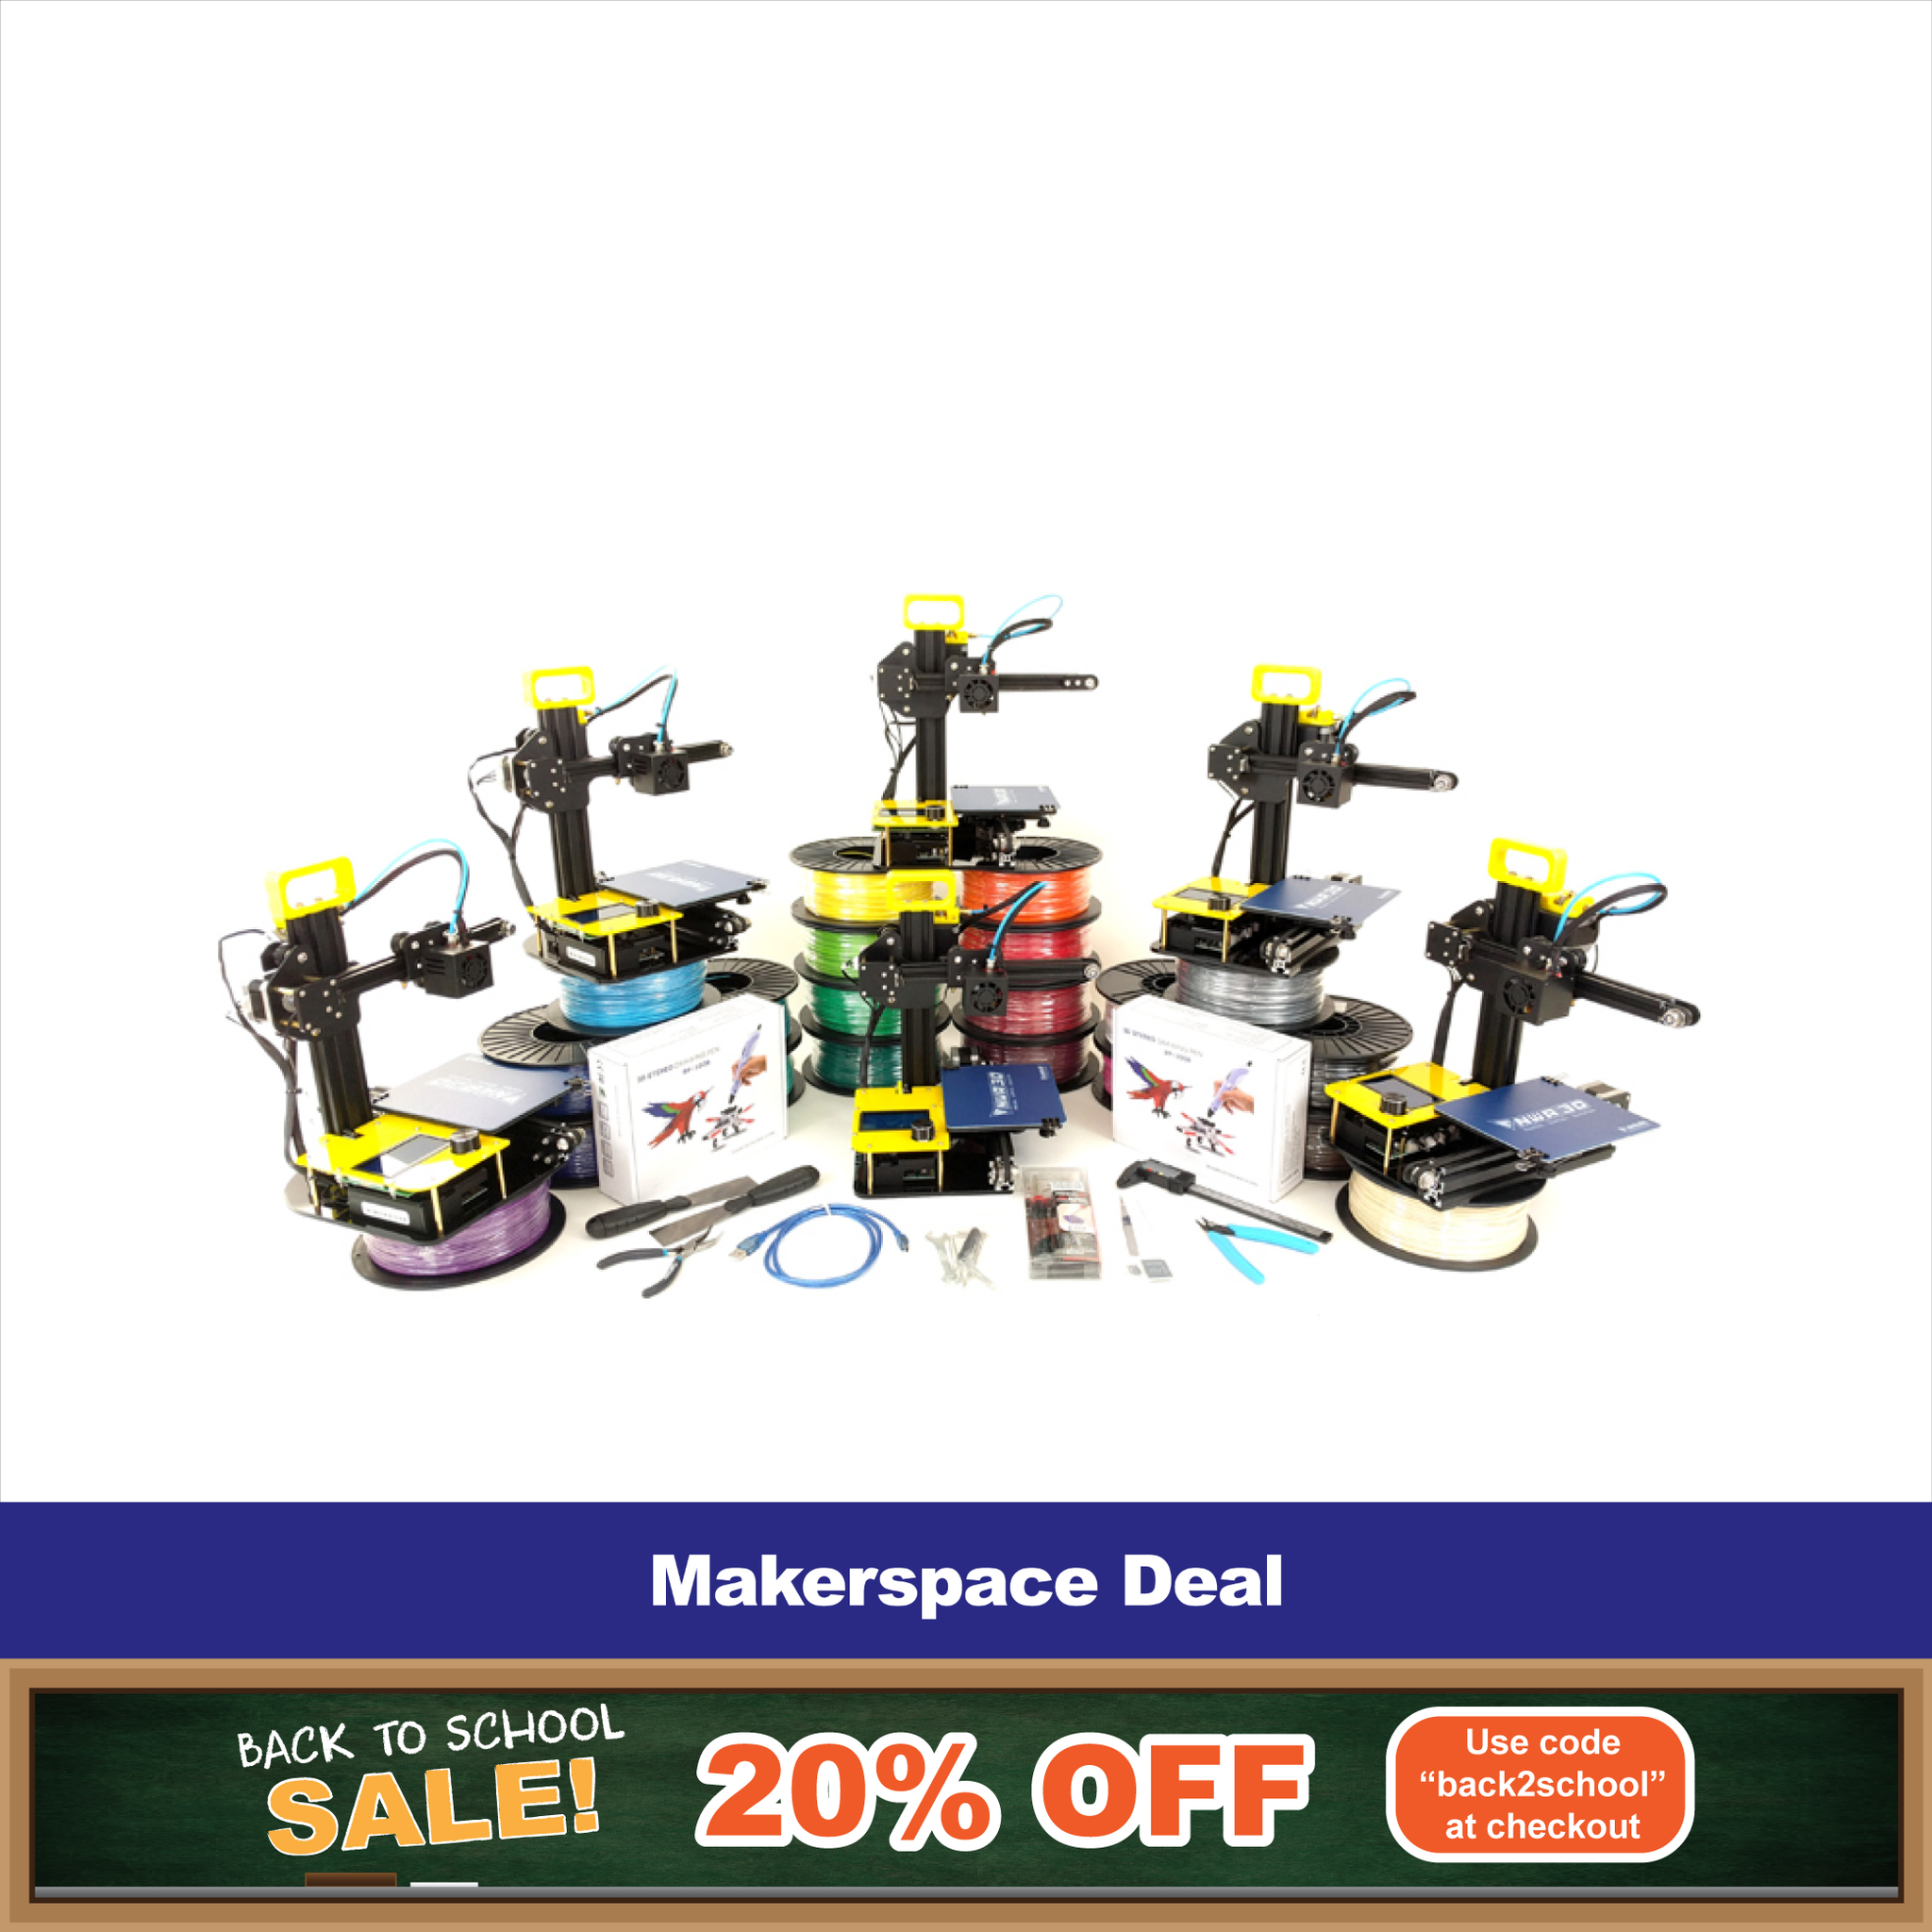 Makerspace Deal 20% Off